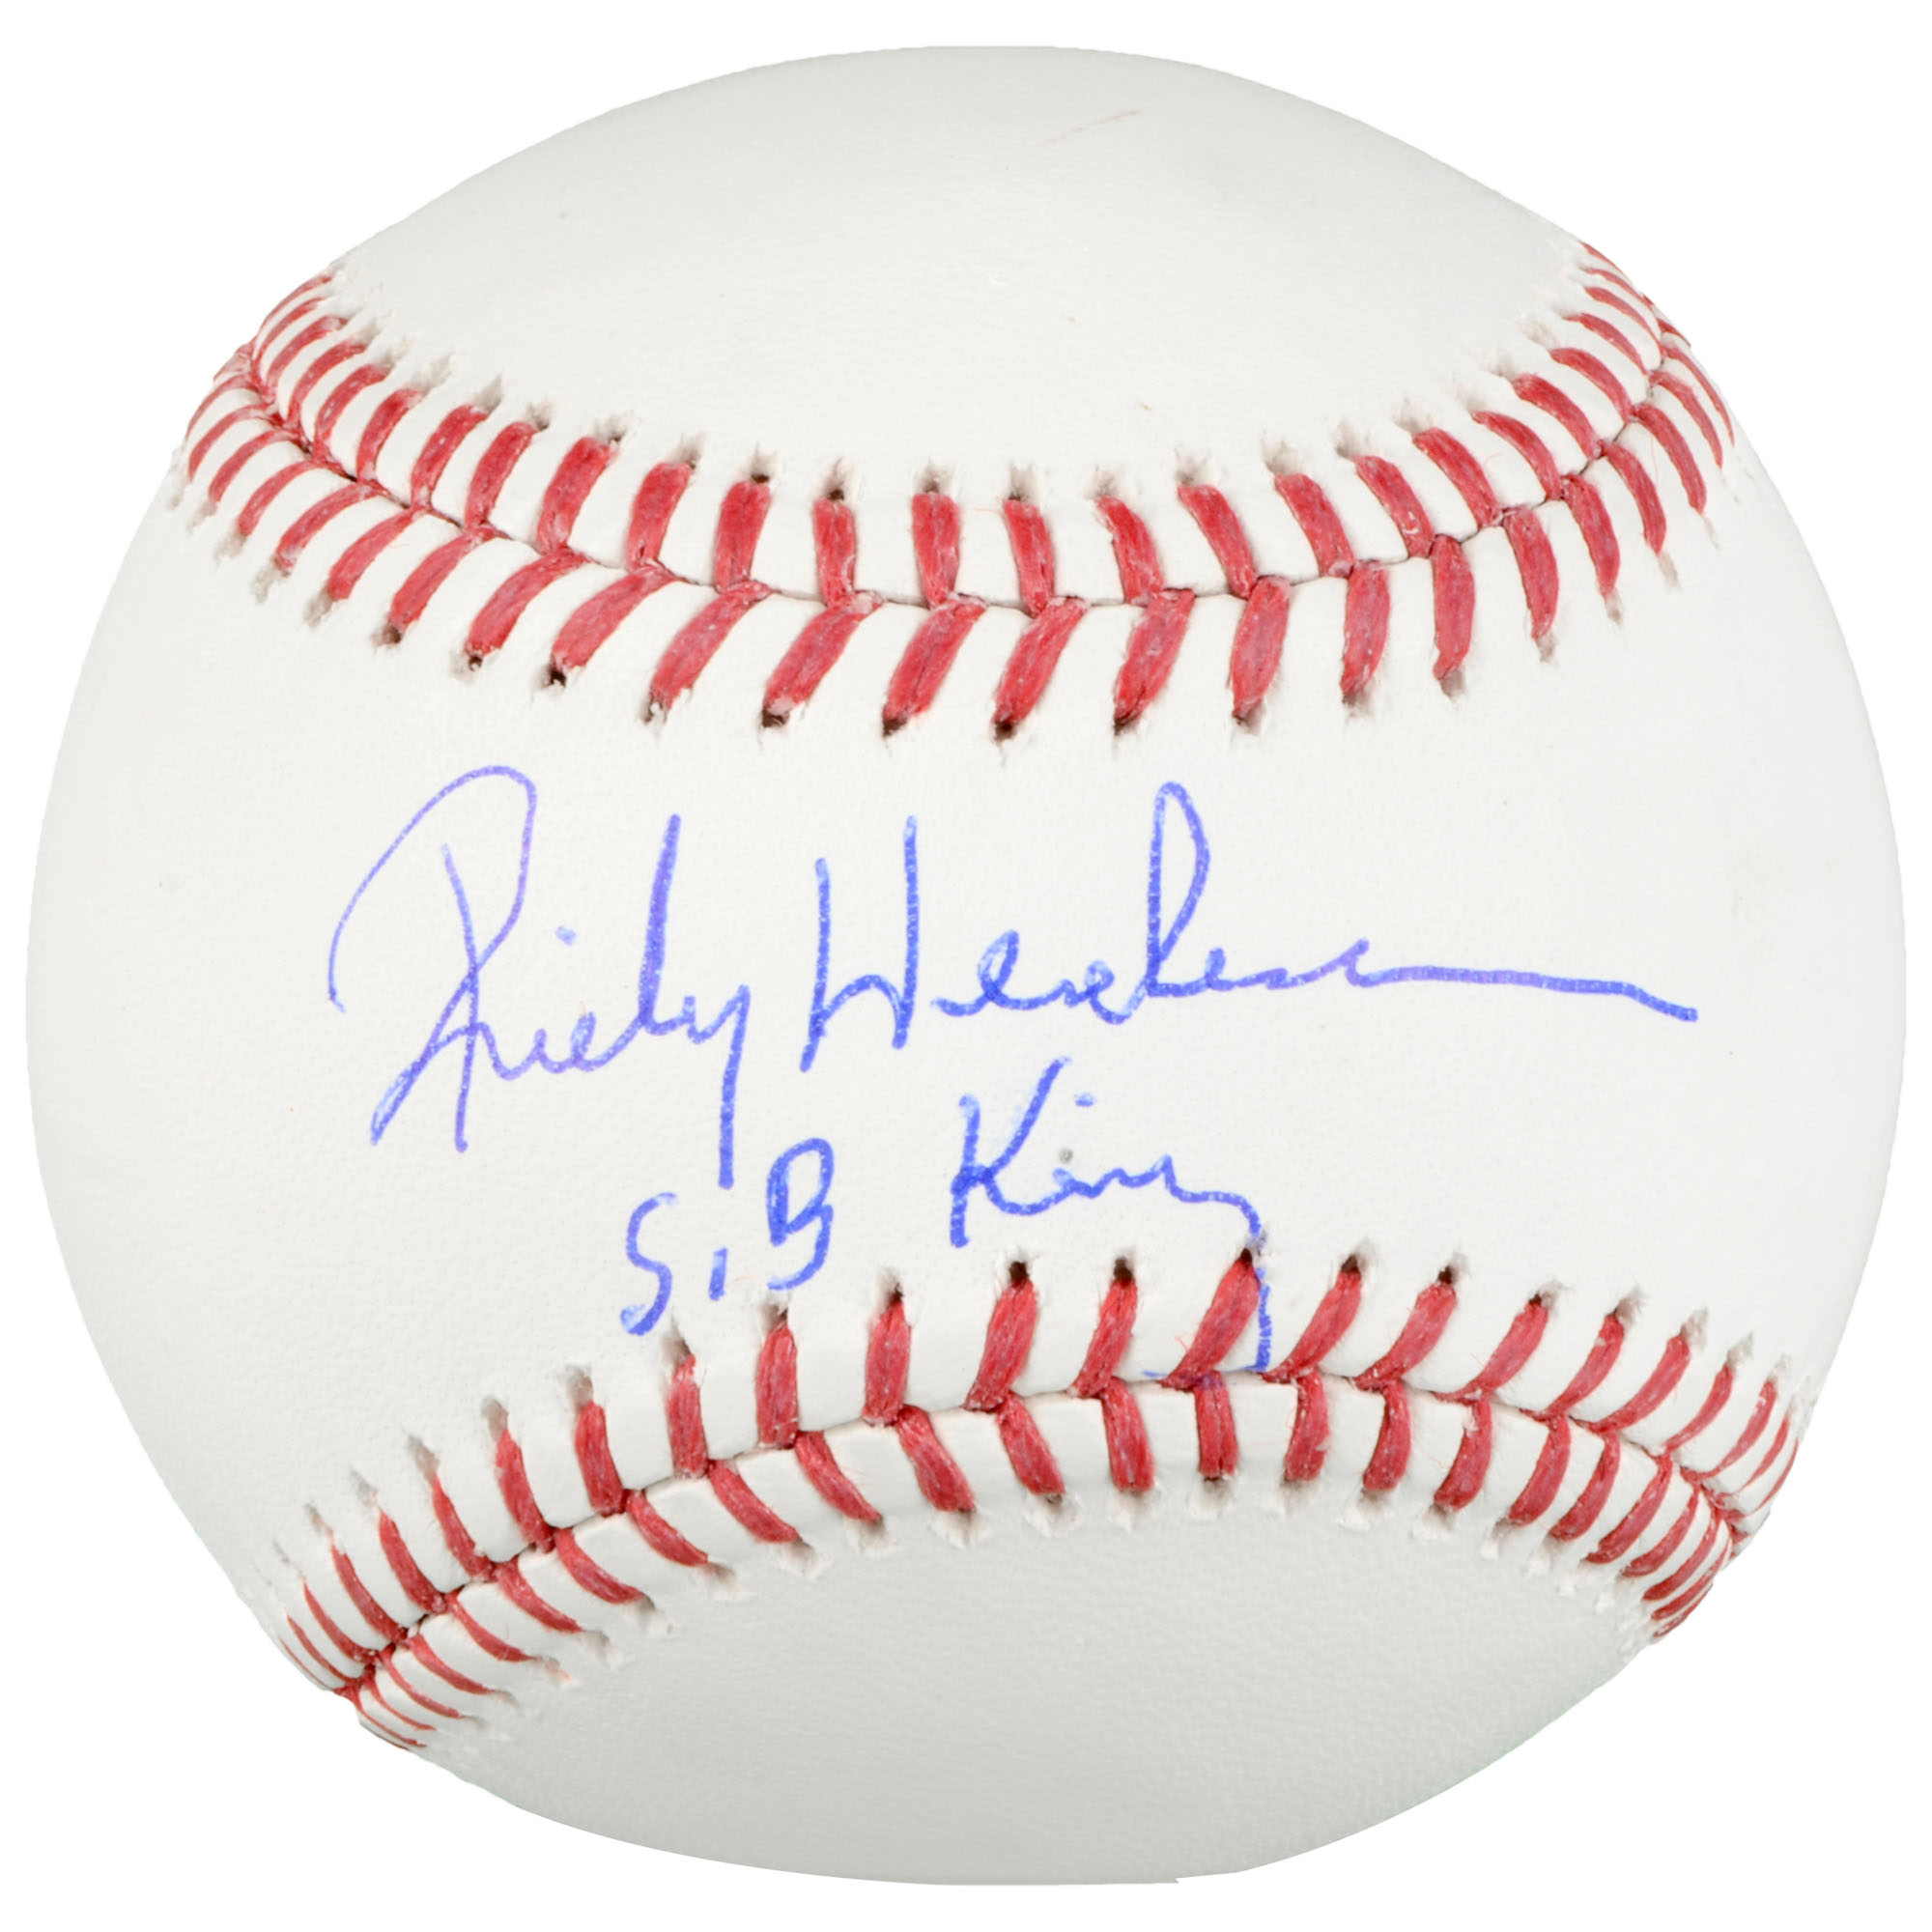 Rickey Henderson Oakland Athletics Fanatics Authentic Autographed Baseball with SB King Inscription - No Size